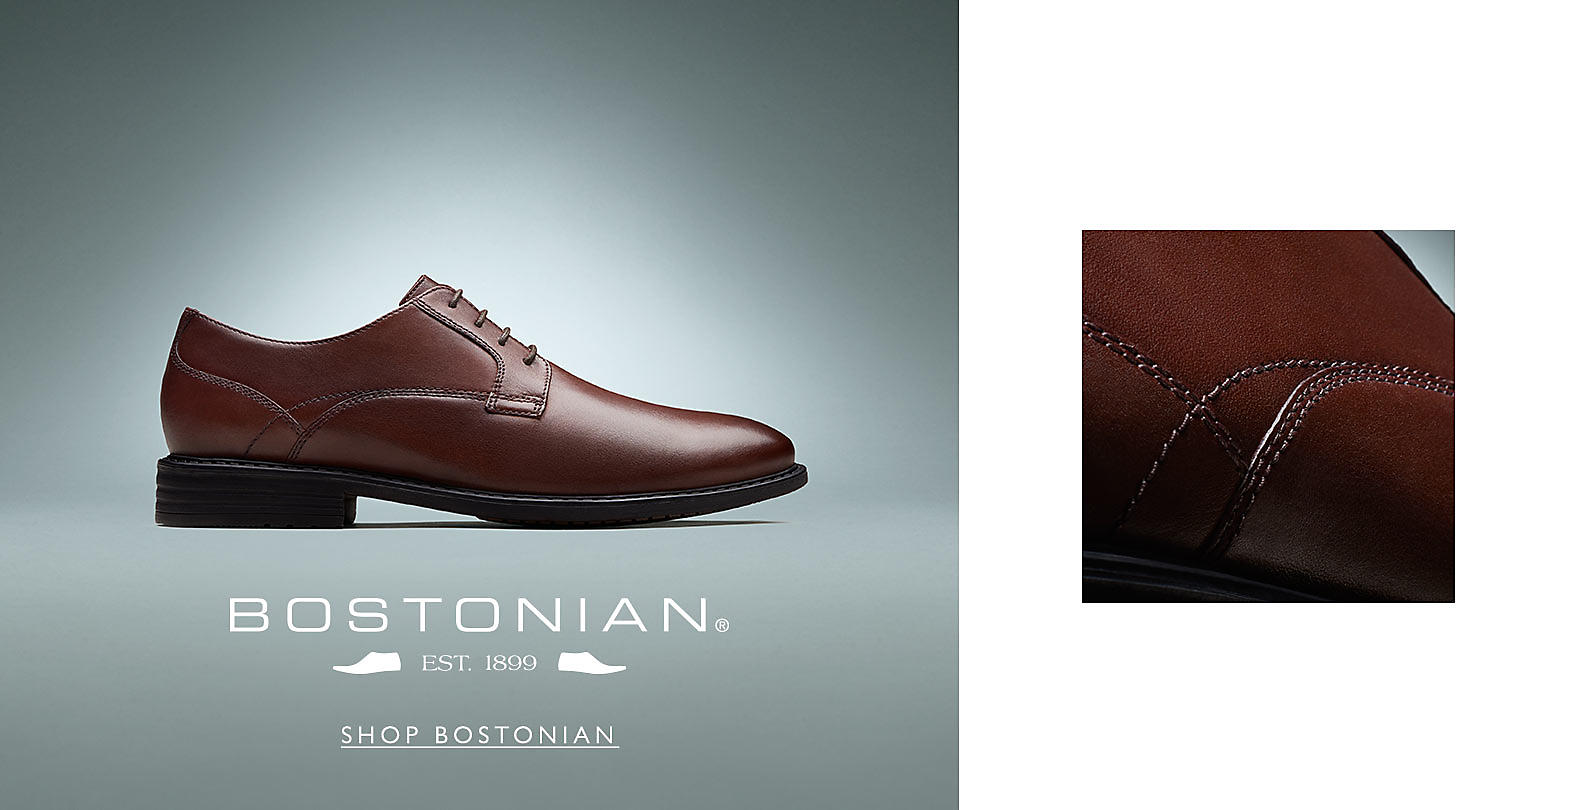 Shop Bostonian New Arrivals